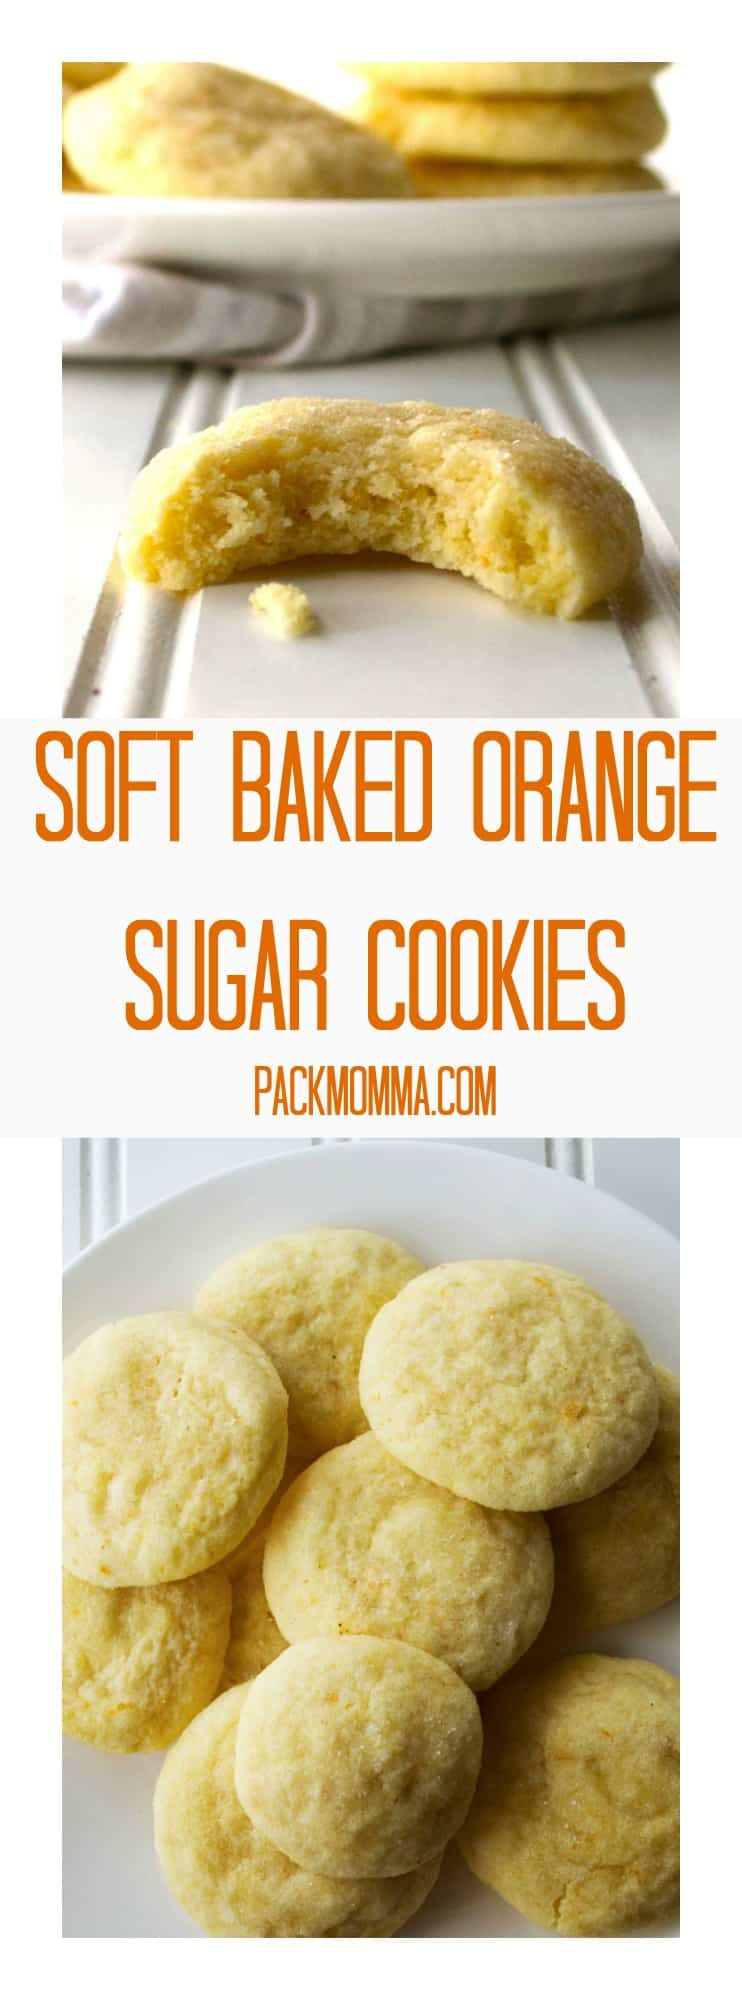 Soft Baked Orange Sugar Cookies | Soft Baked Orange Sugar Cookies are soft sugar cookies that burst with orange flavor and are sure to be your new favorite sweet treat. | Pack Momma | https://www.packmomma.com